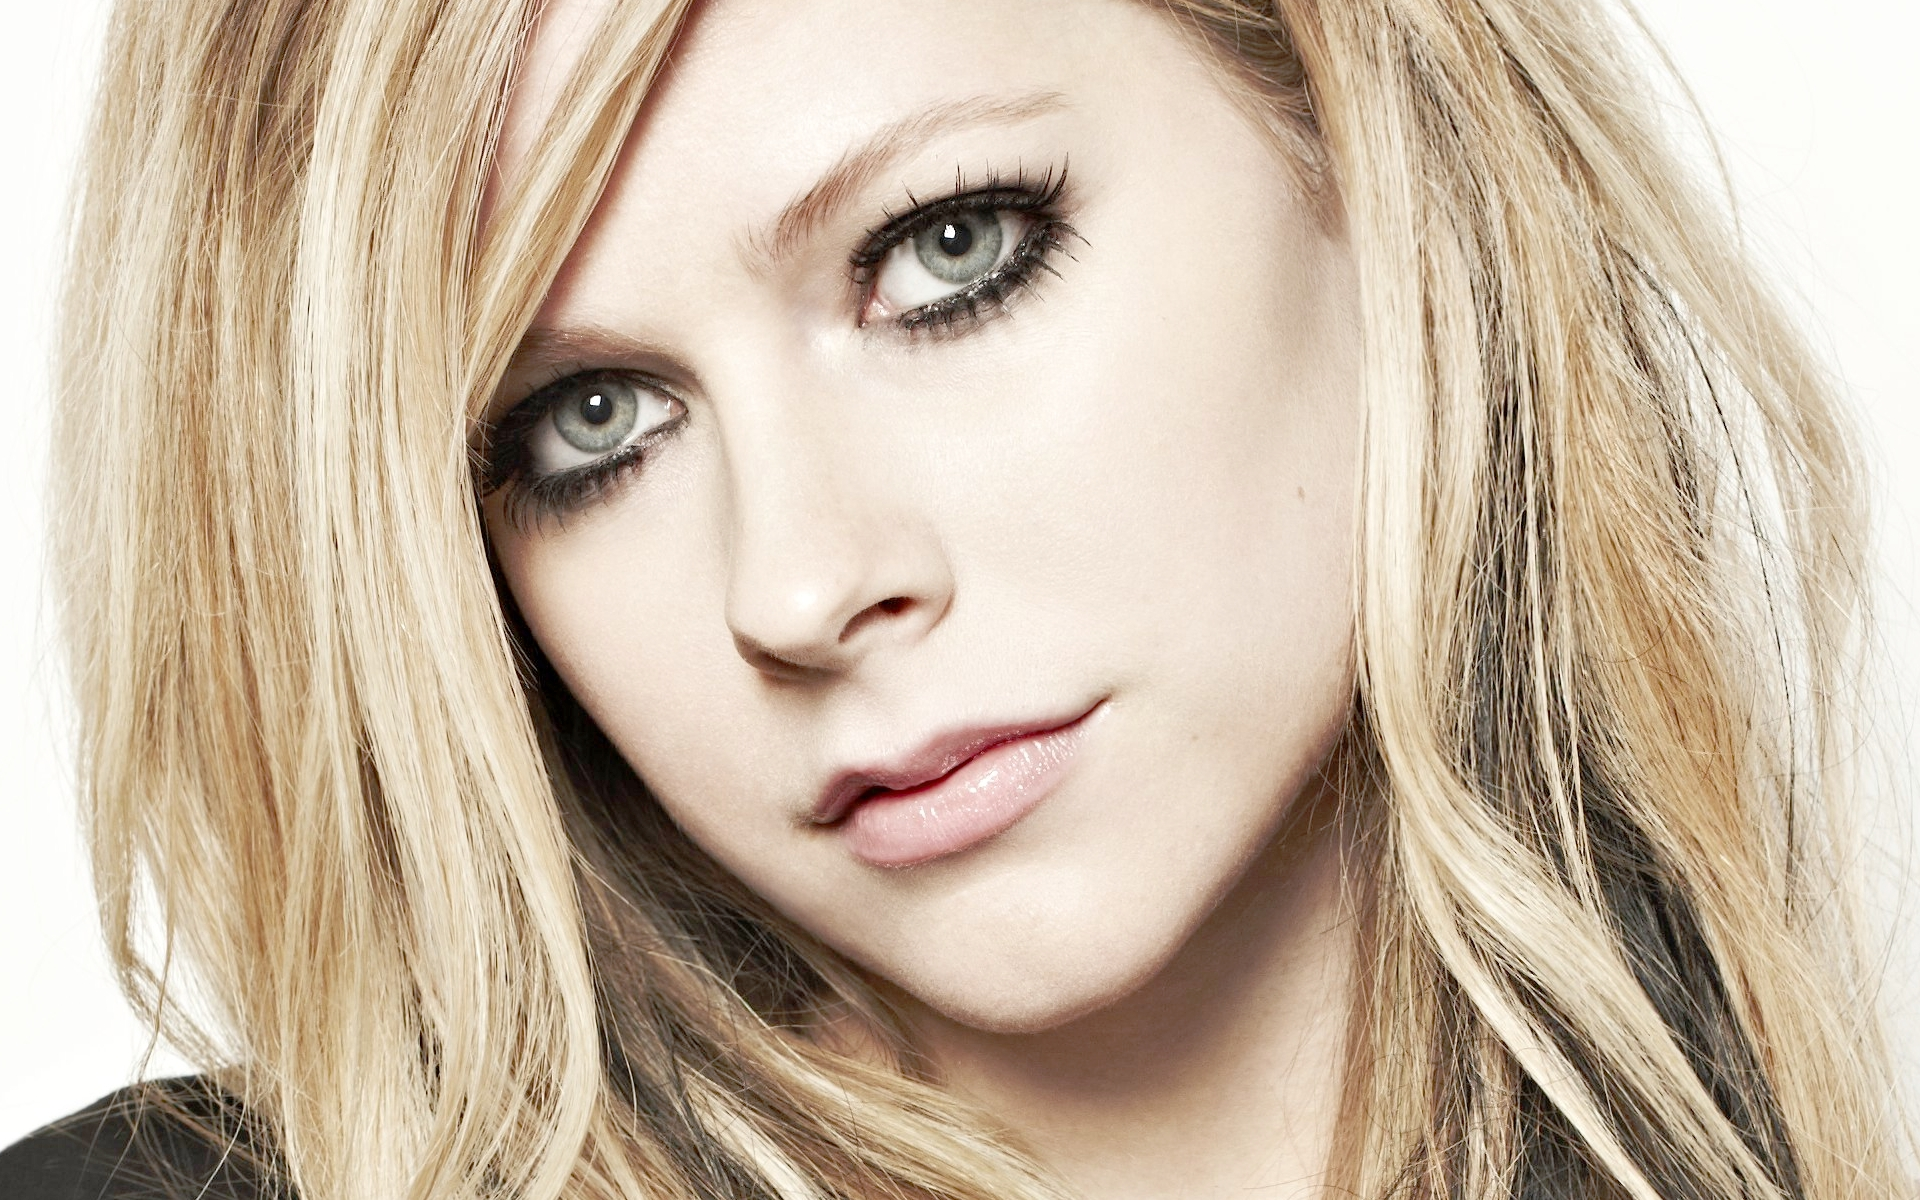 Avril Lavigne - Avril Lavigne Wallpaper (31810143) - Fanpop: http://www.fanpop.com/clubs/avril-lavigne/images/31810143/title/avril-lavigne-wallpaper